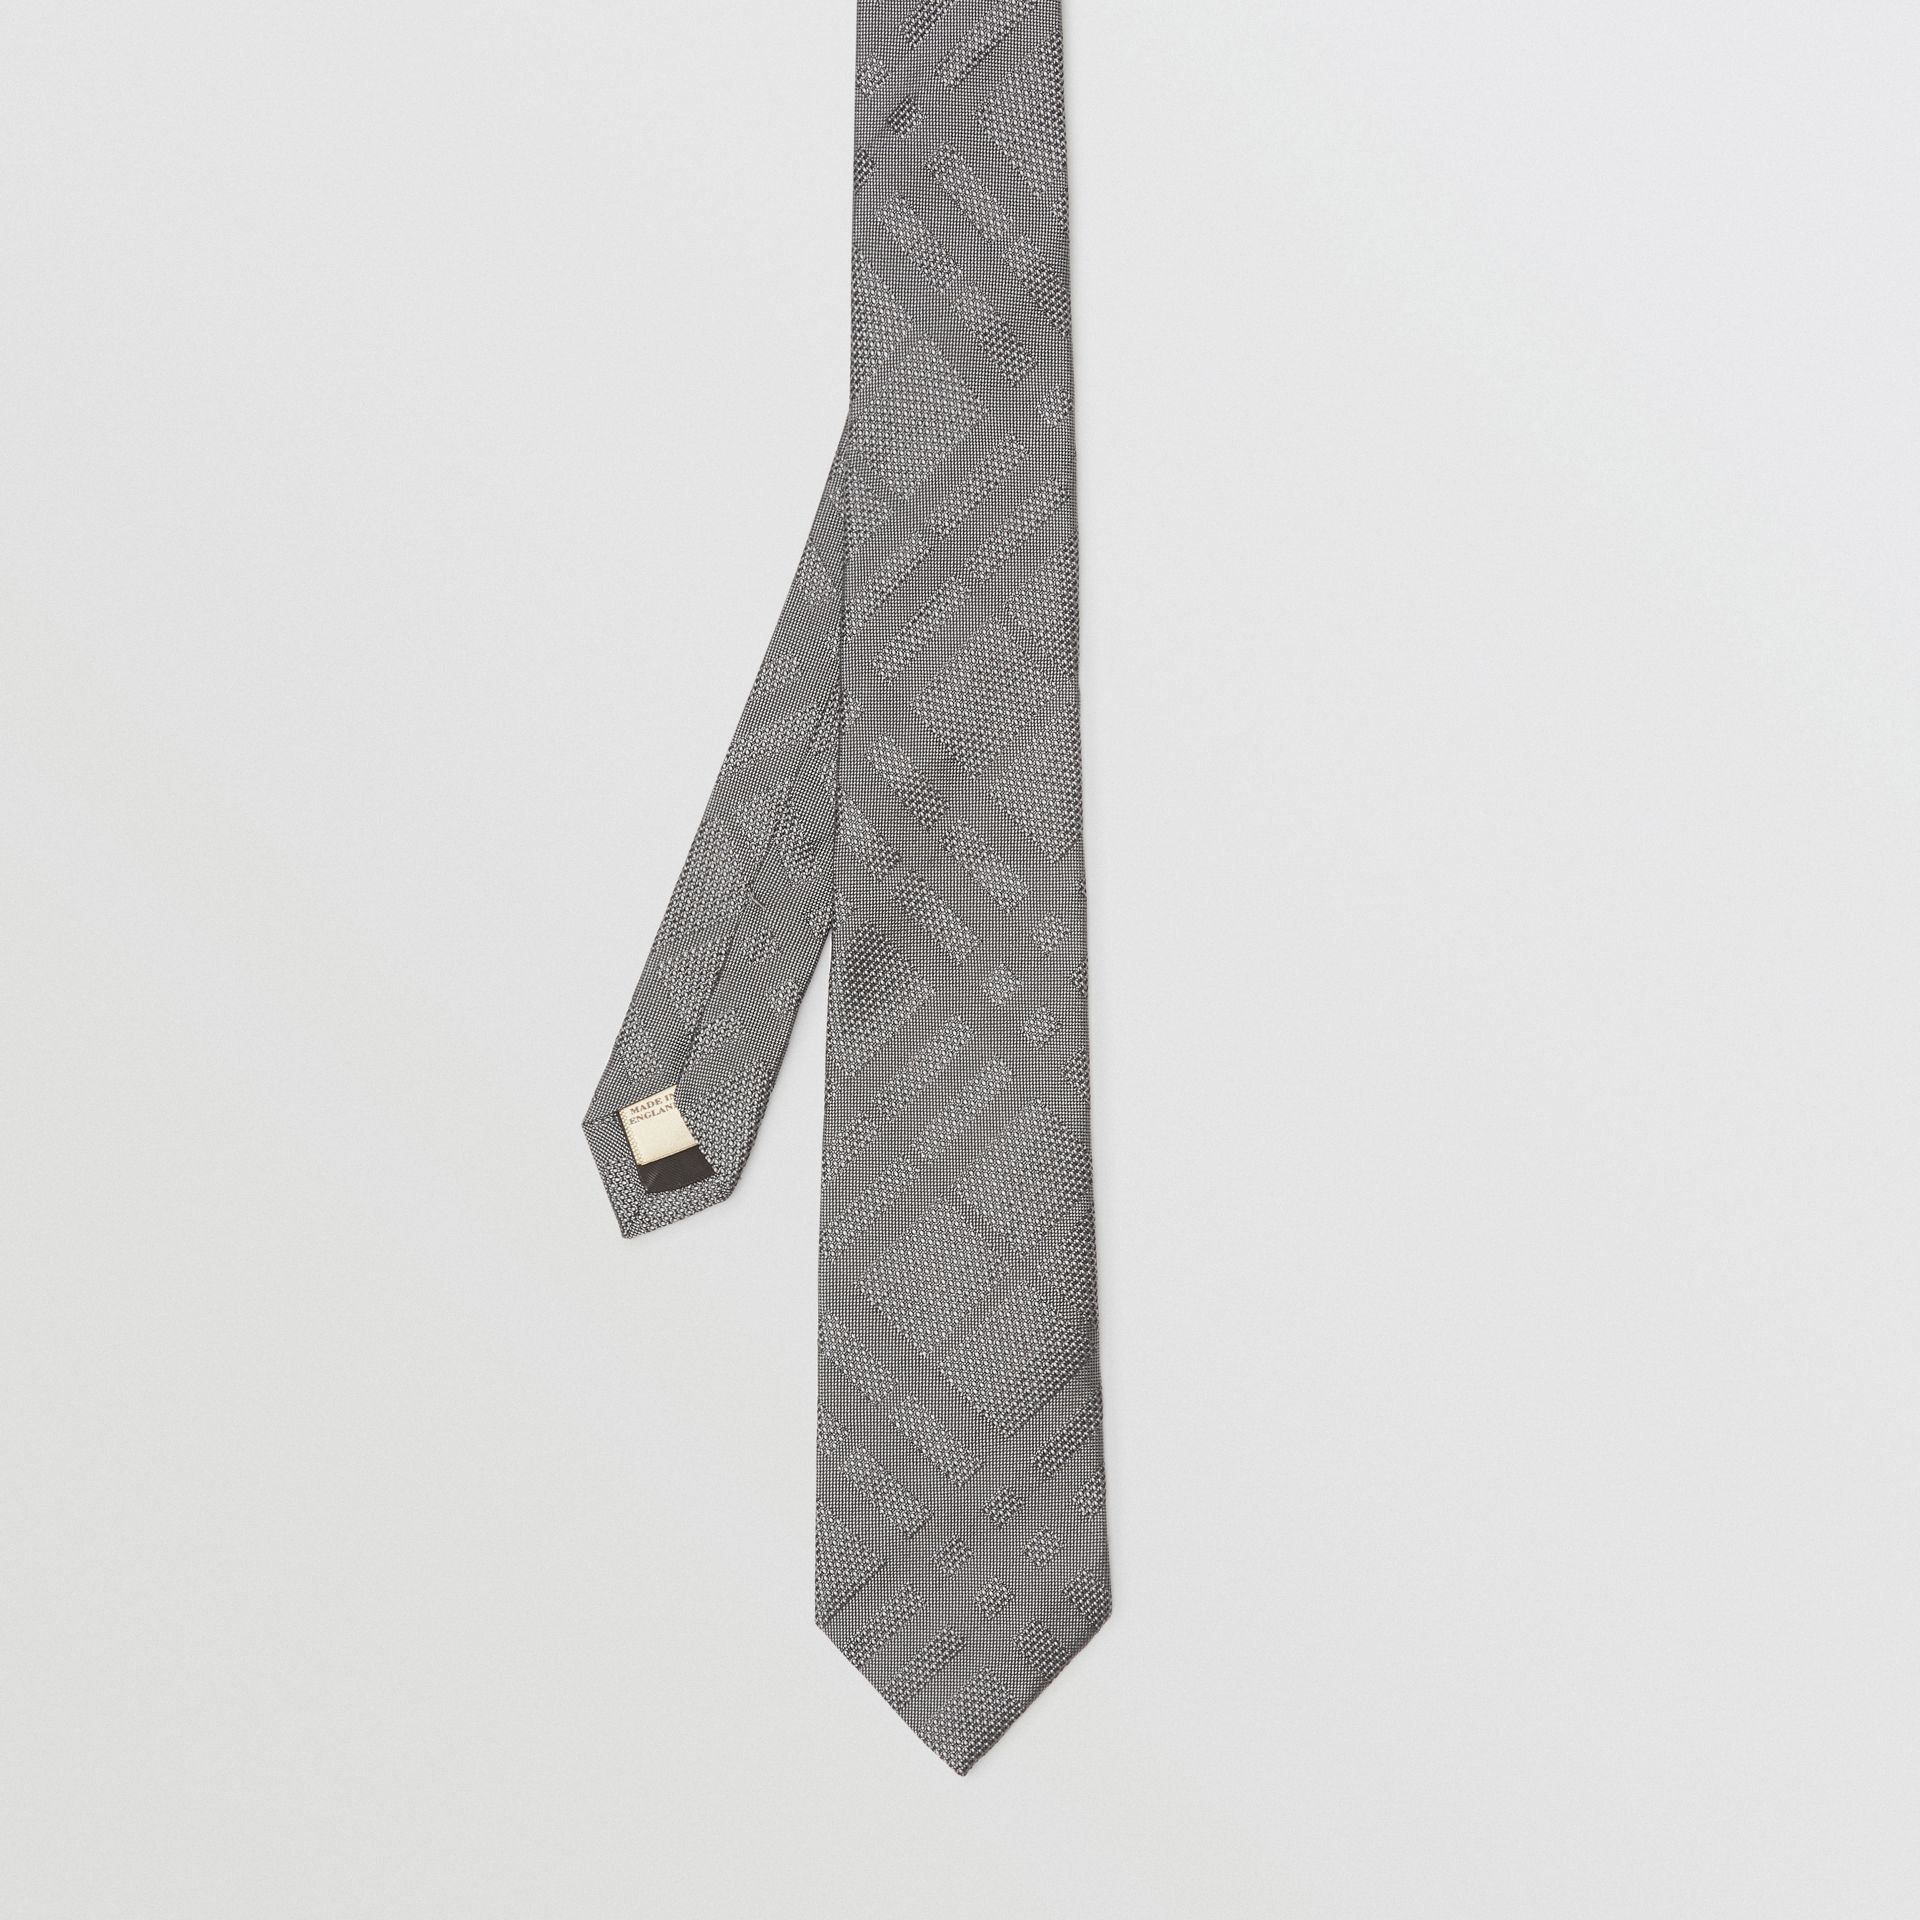 Classic Cut Check Silk Jacquard Tie in Charcoal - Men | Burberry Singapore - gallery image 4